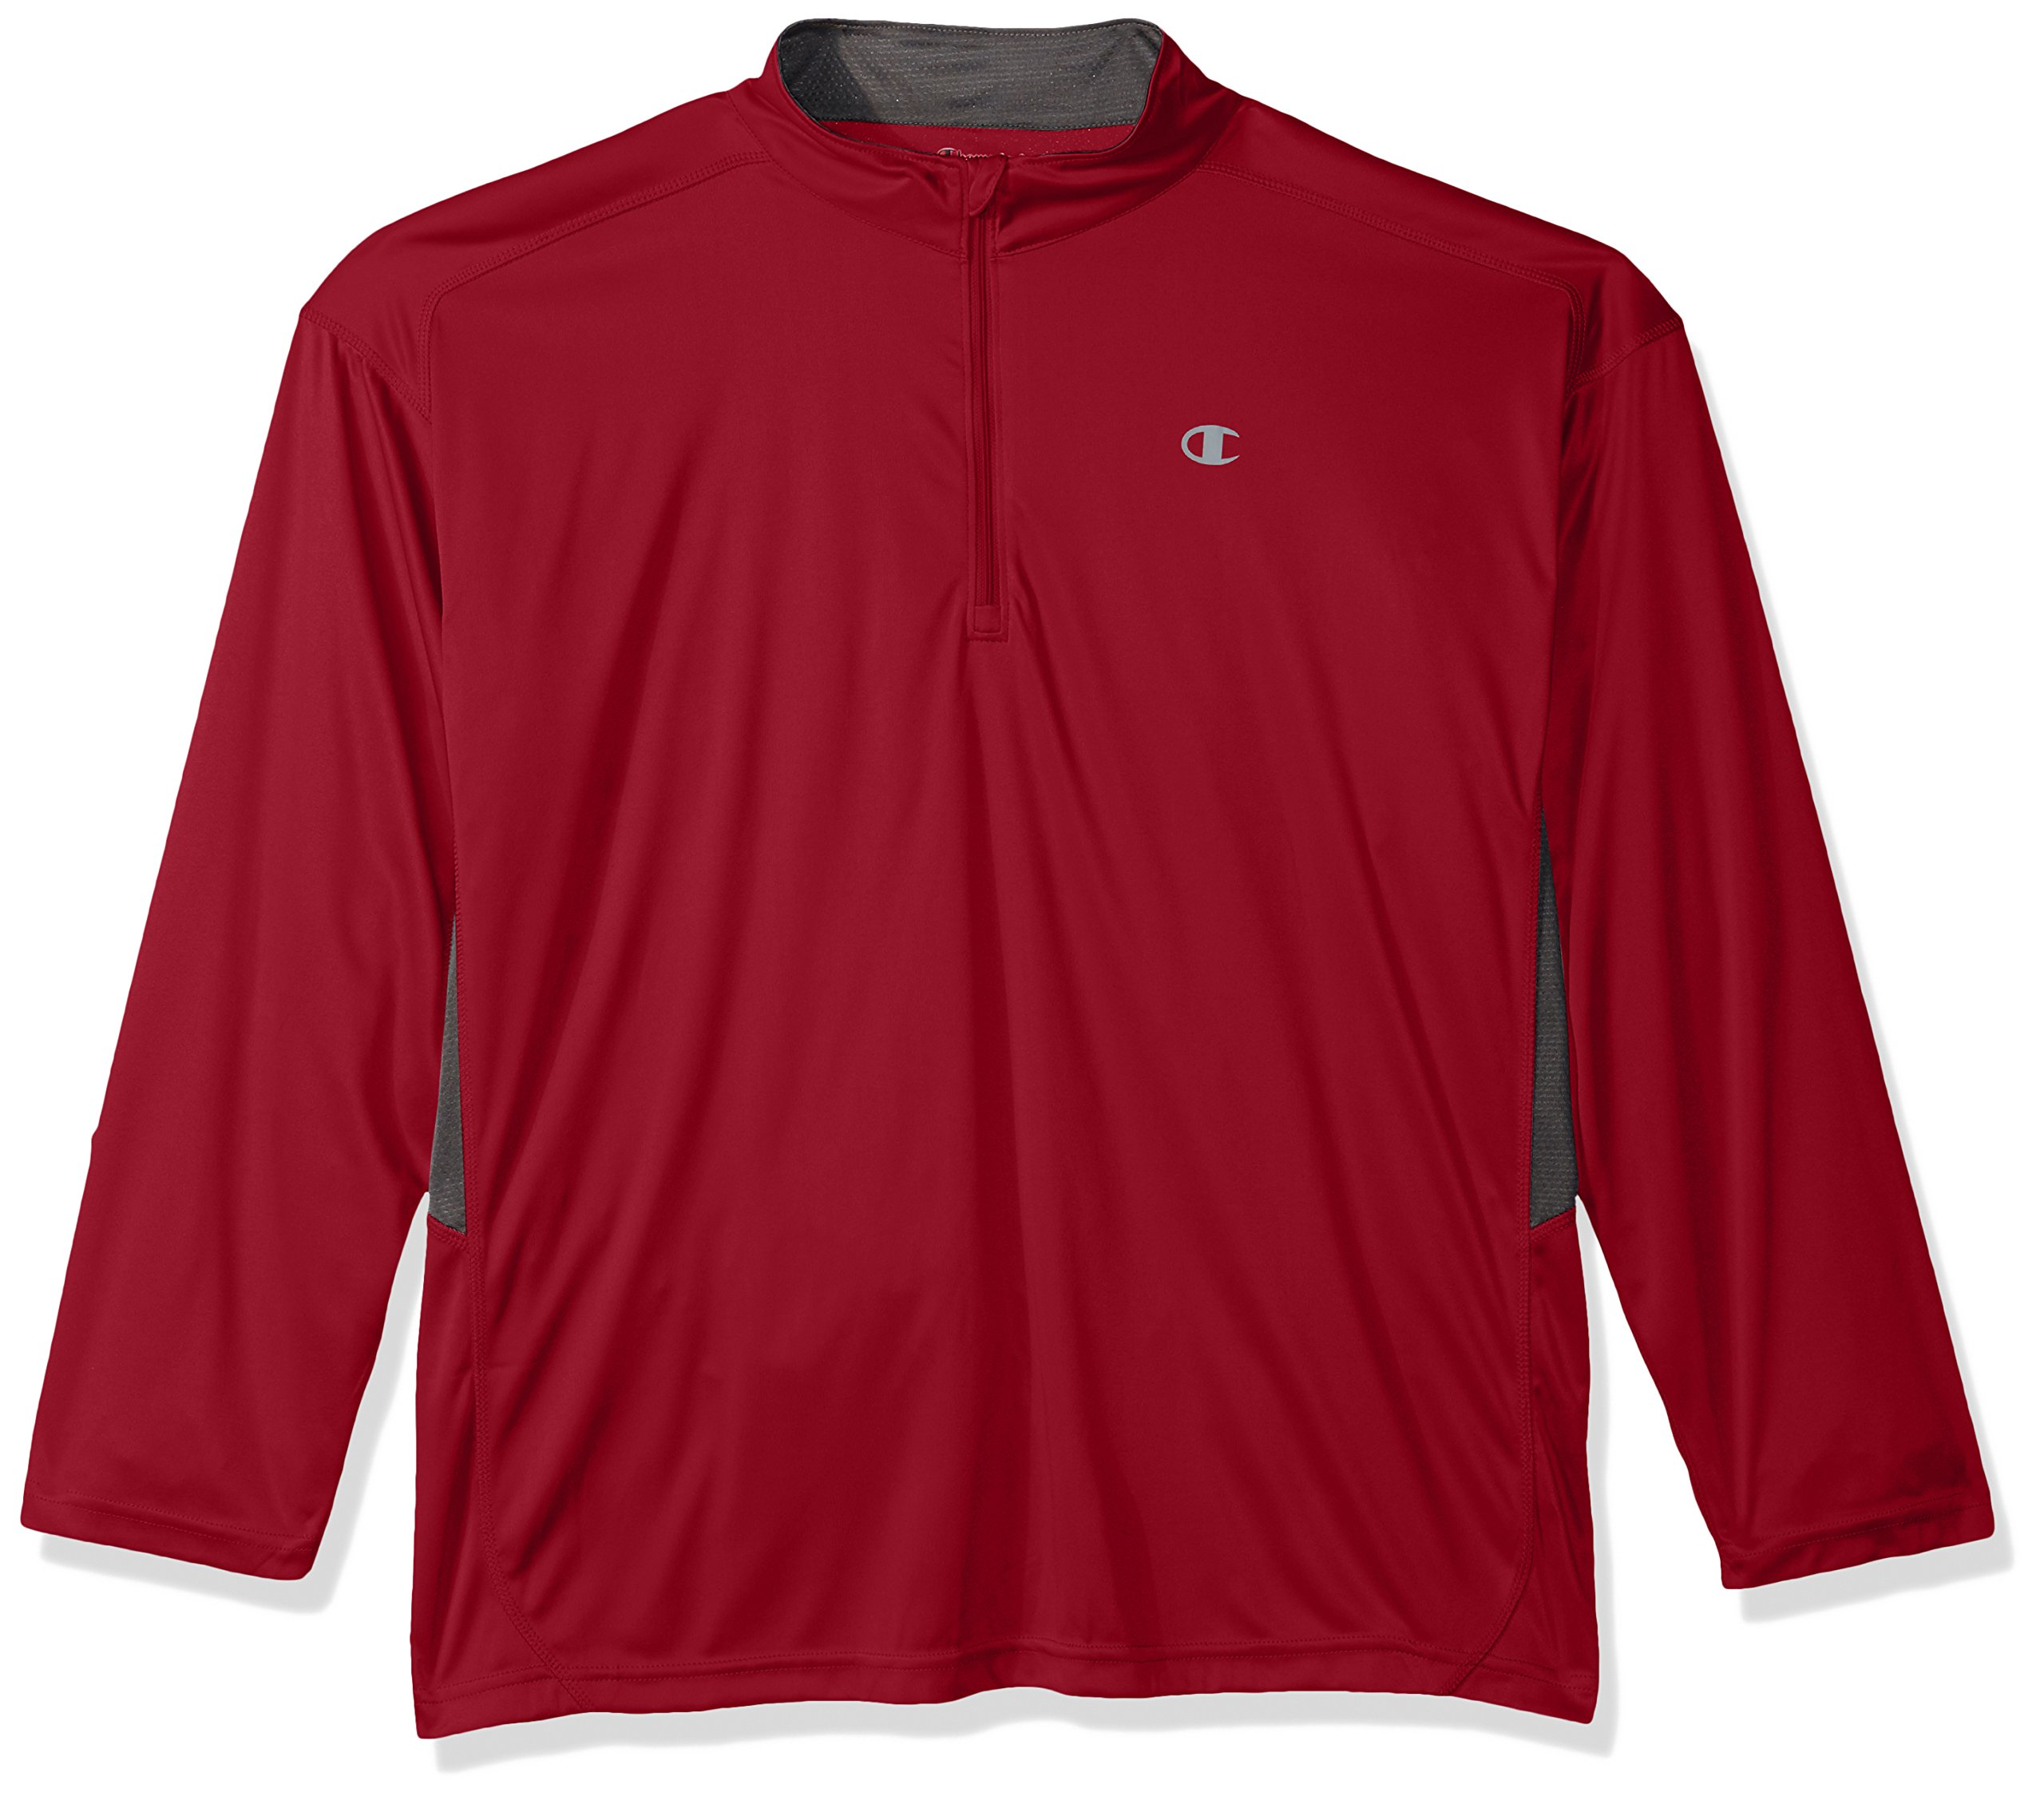 Champion Men's Big and Tall 1/4 Zip Pullover with Lc c, Card red/Stealth, 2X by Champion